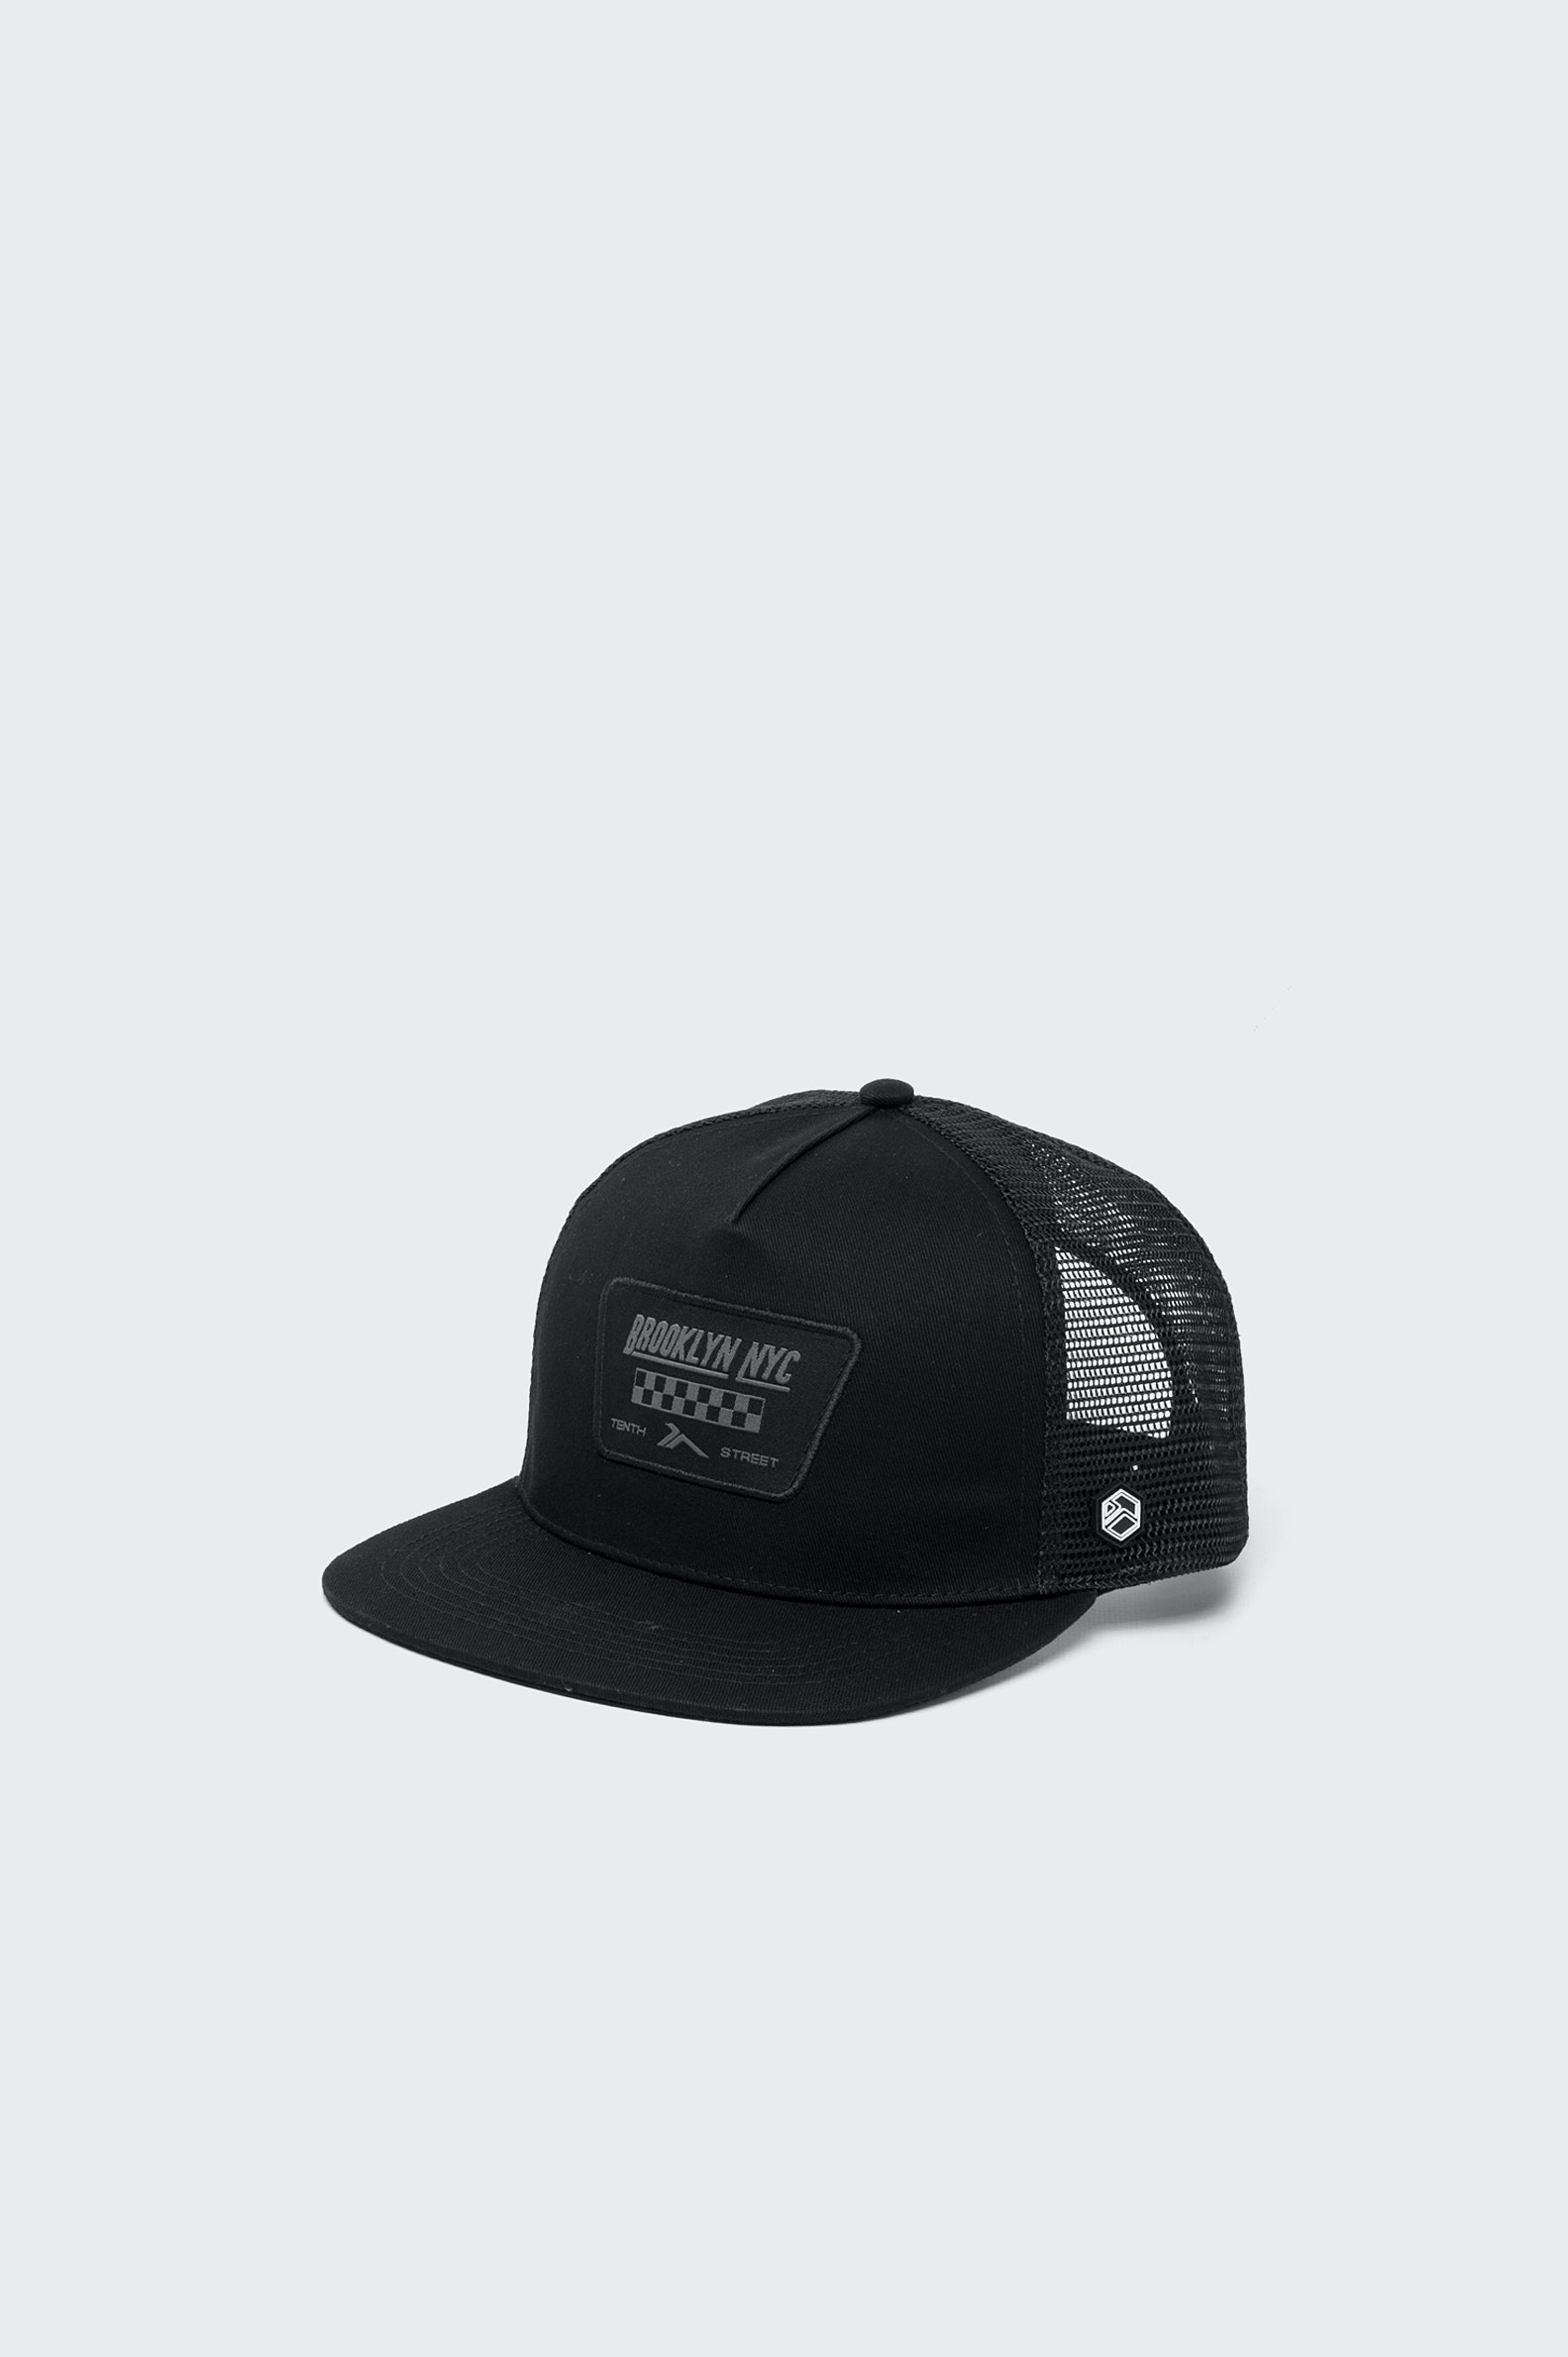 CASQUETTE FREESTYLE TENTH BROOKLYN HOMME